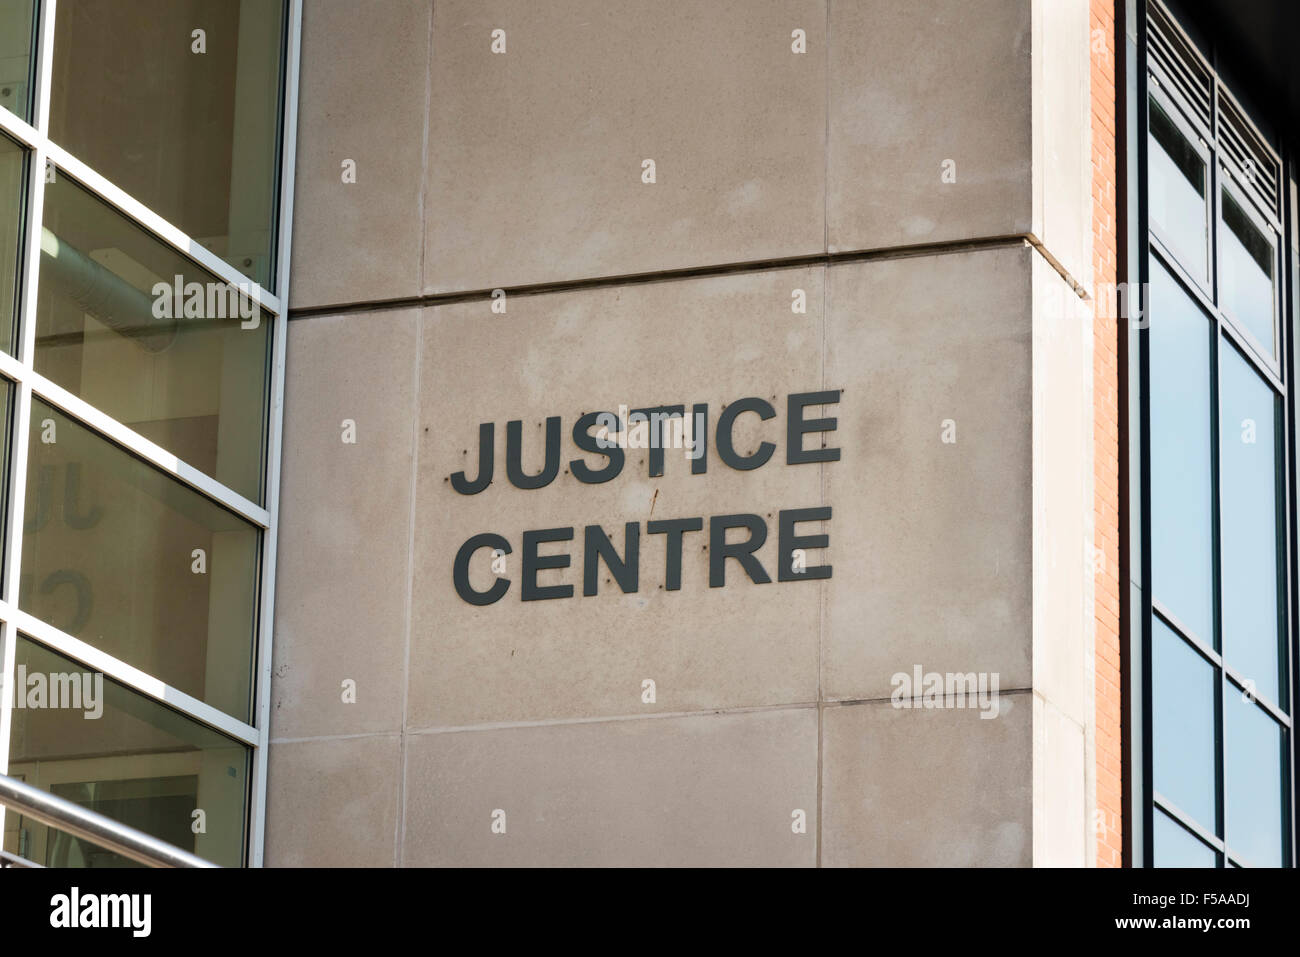 Justice Centre replaced Magistrates Court, UK. - Stock Image